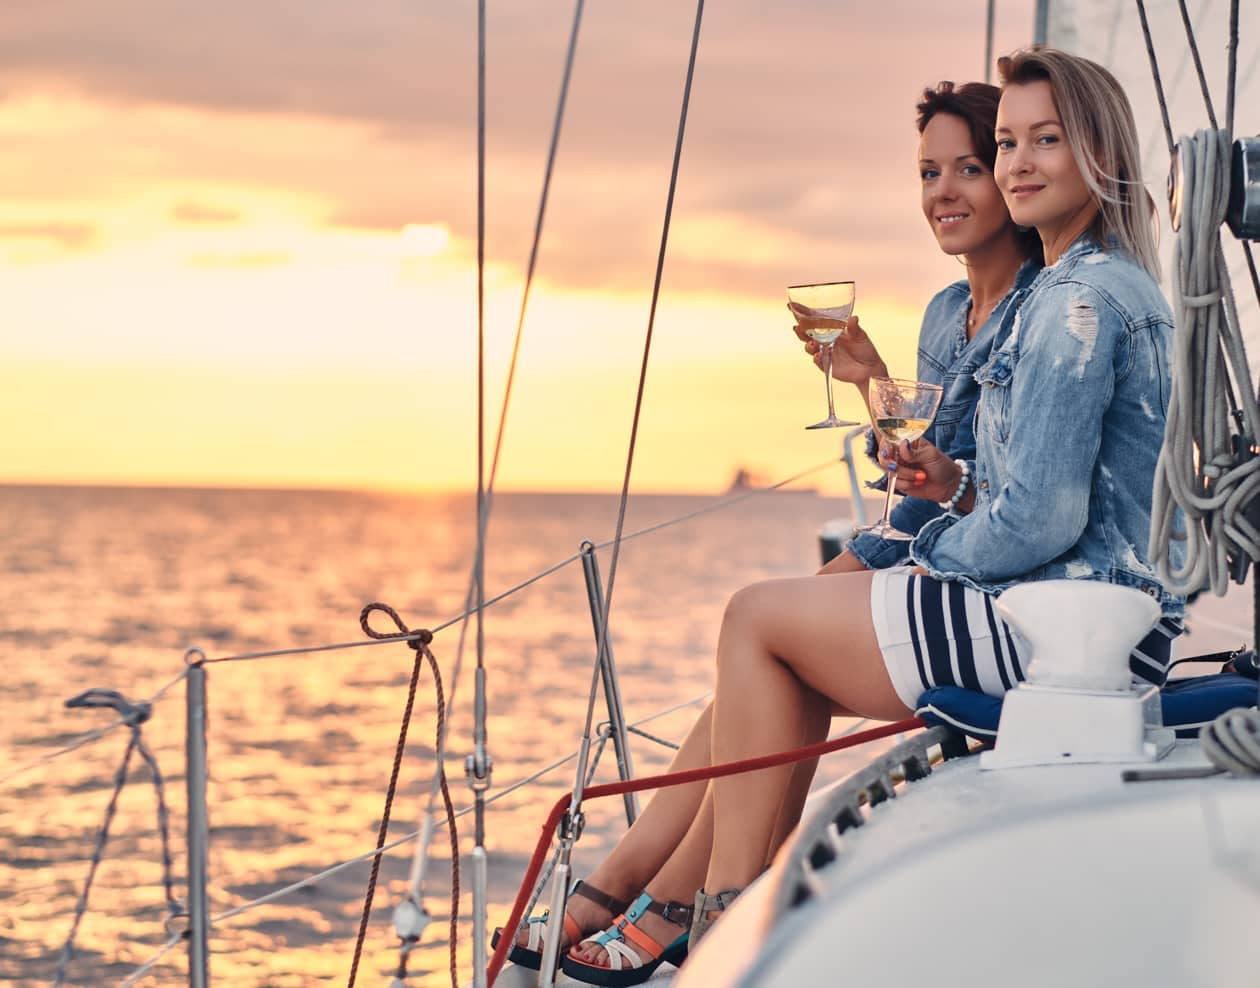 two friends on a sailboat drinking wine